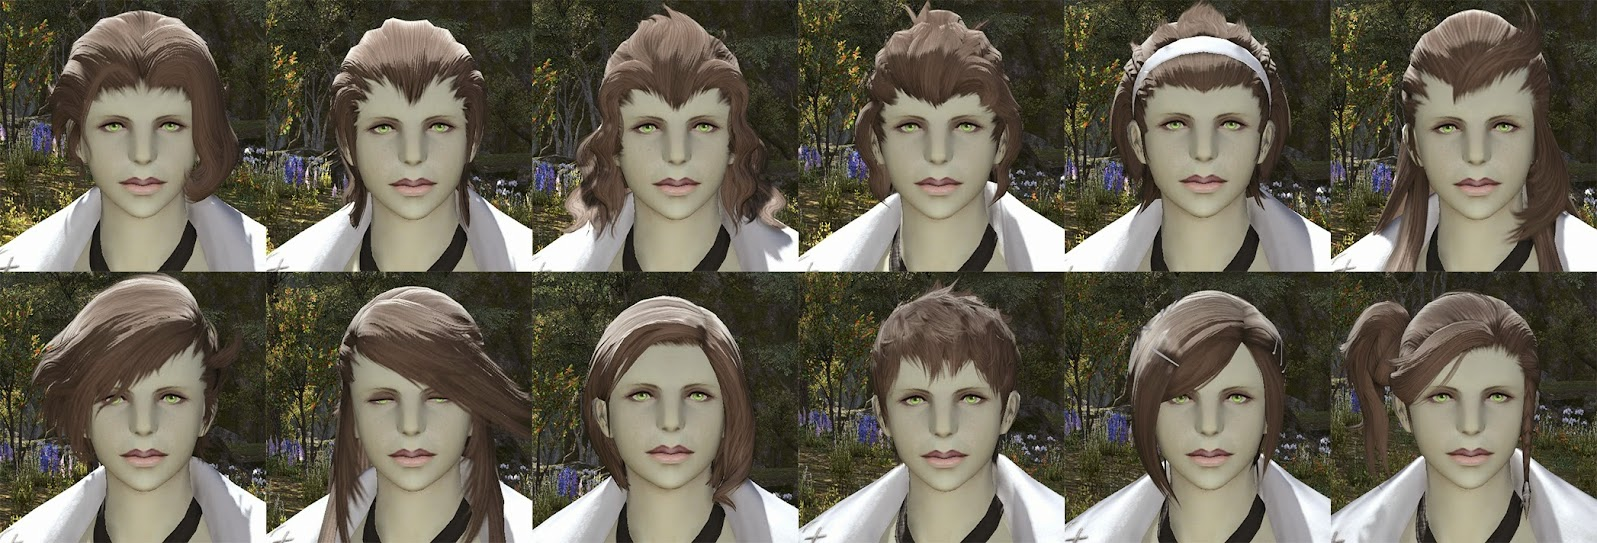 FFXIV Character Creation | Ald Demo